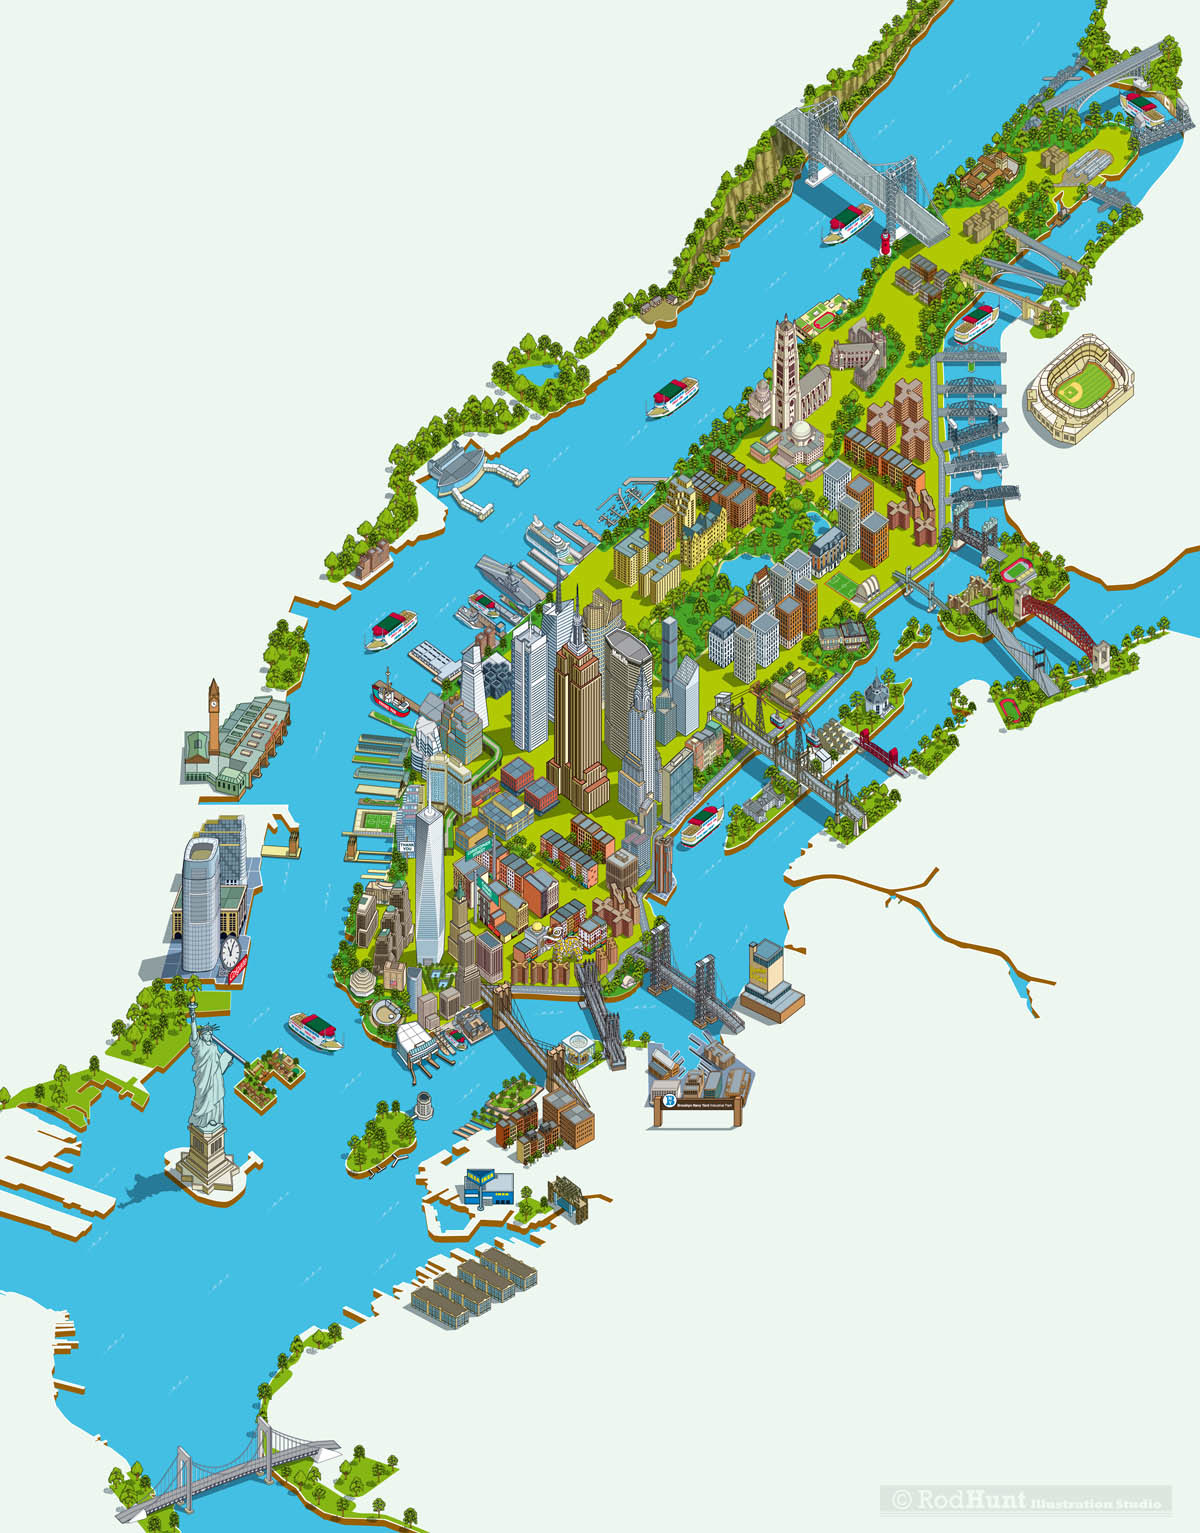 more than 23 bridges the new world trade center and all the other fantastic buildings monuments neighborhoods and attractions that make new york the